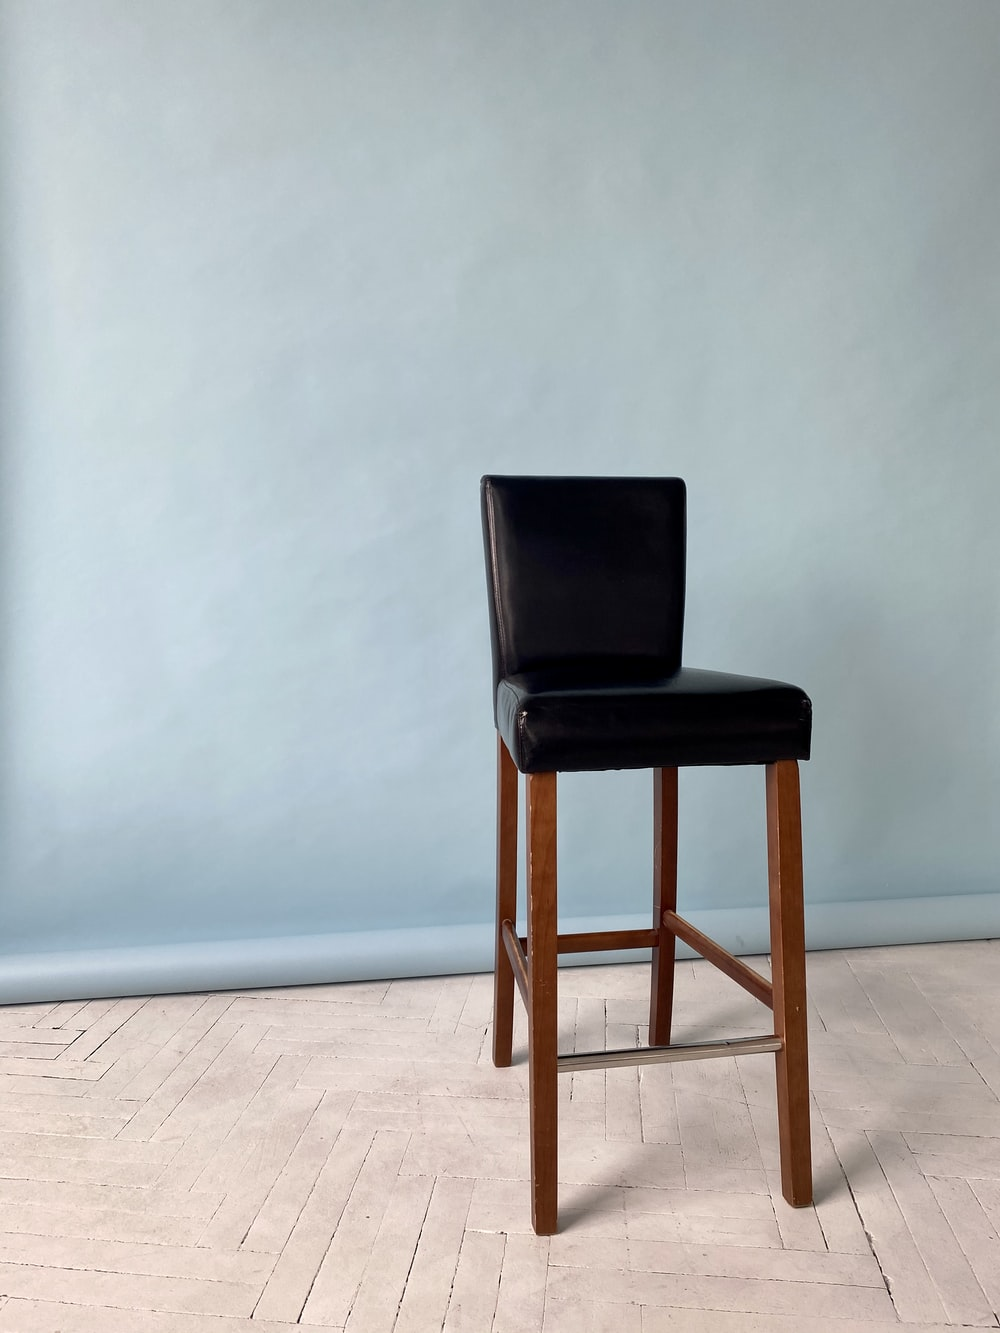 brown wooden chair beside white wall